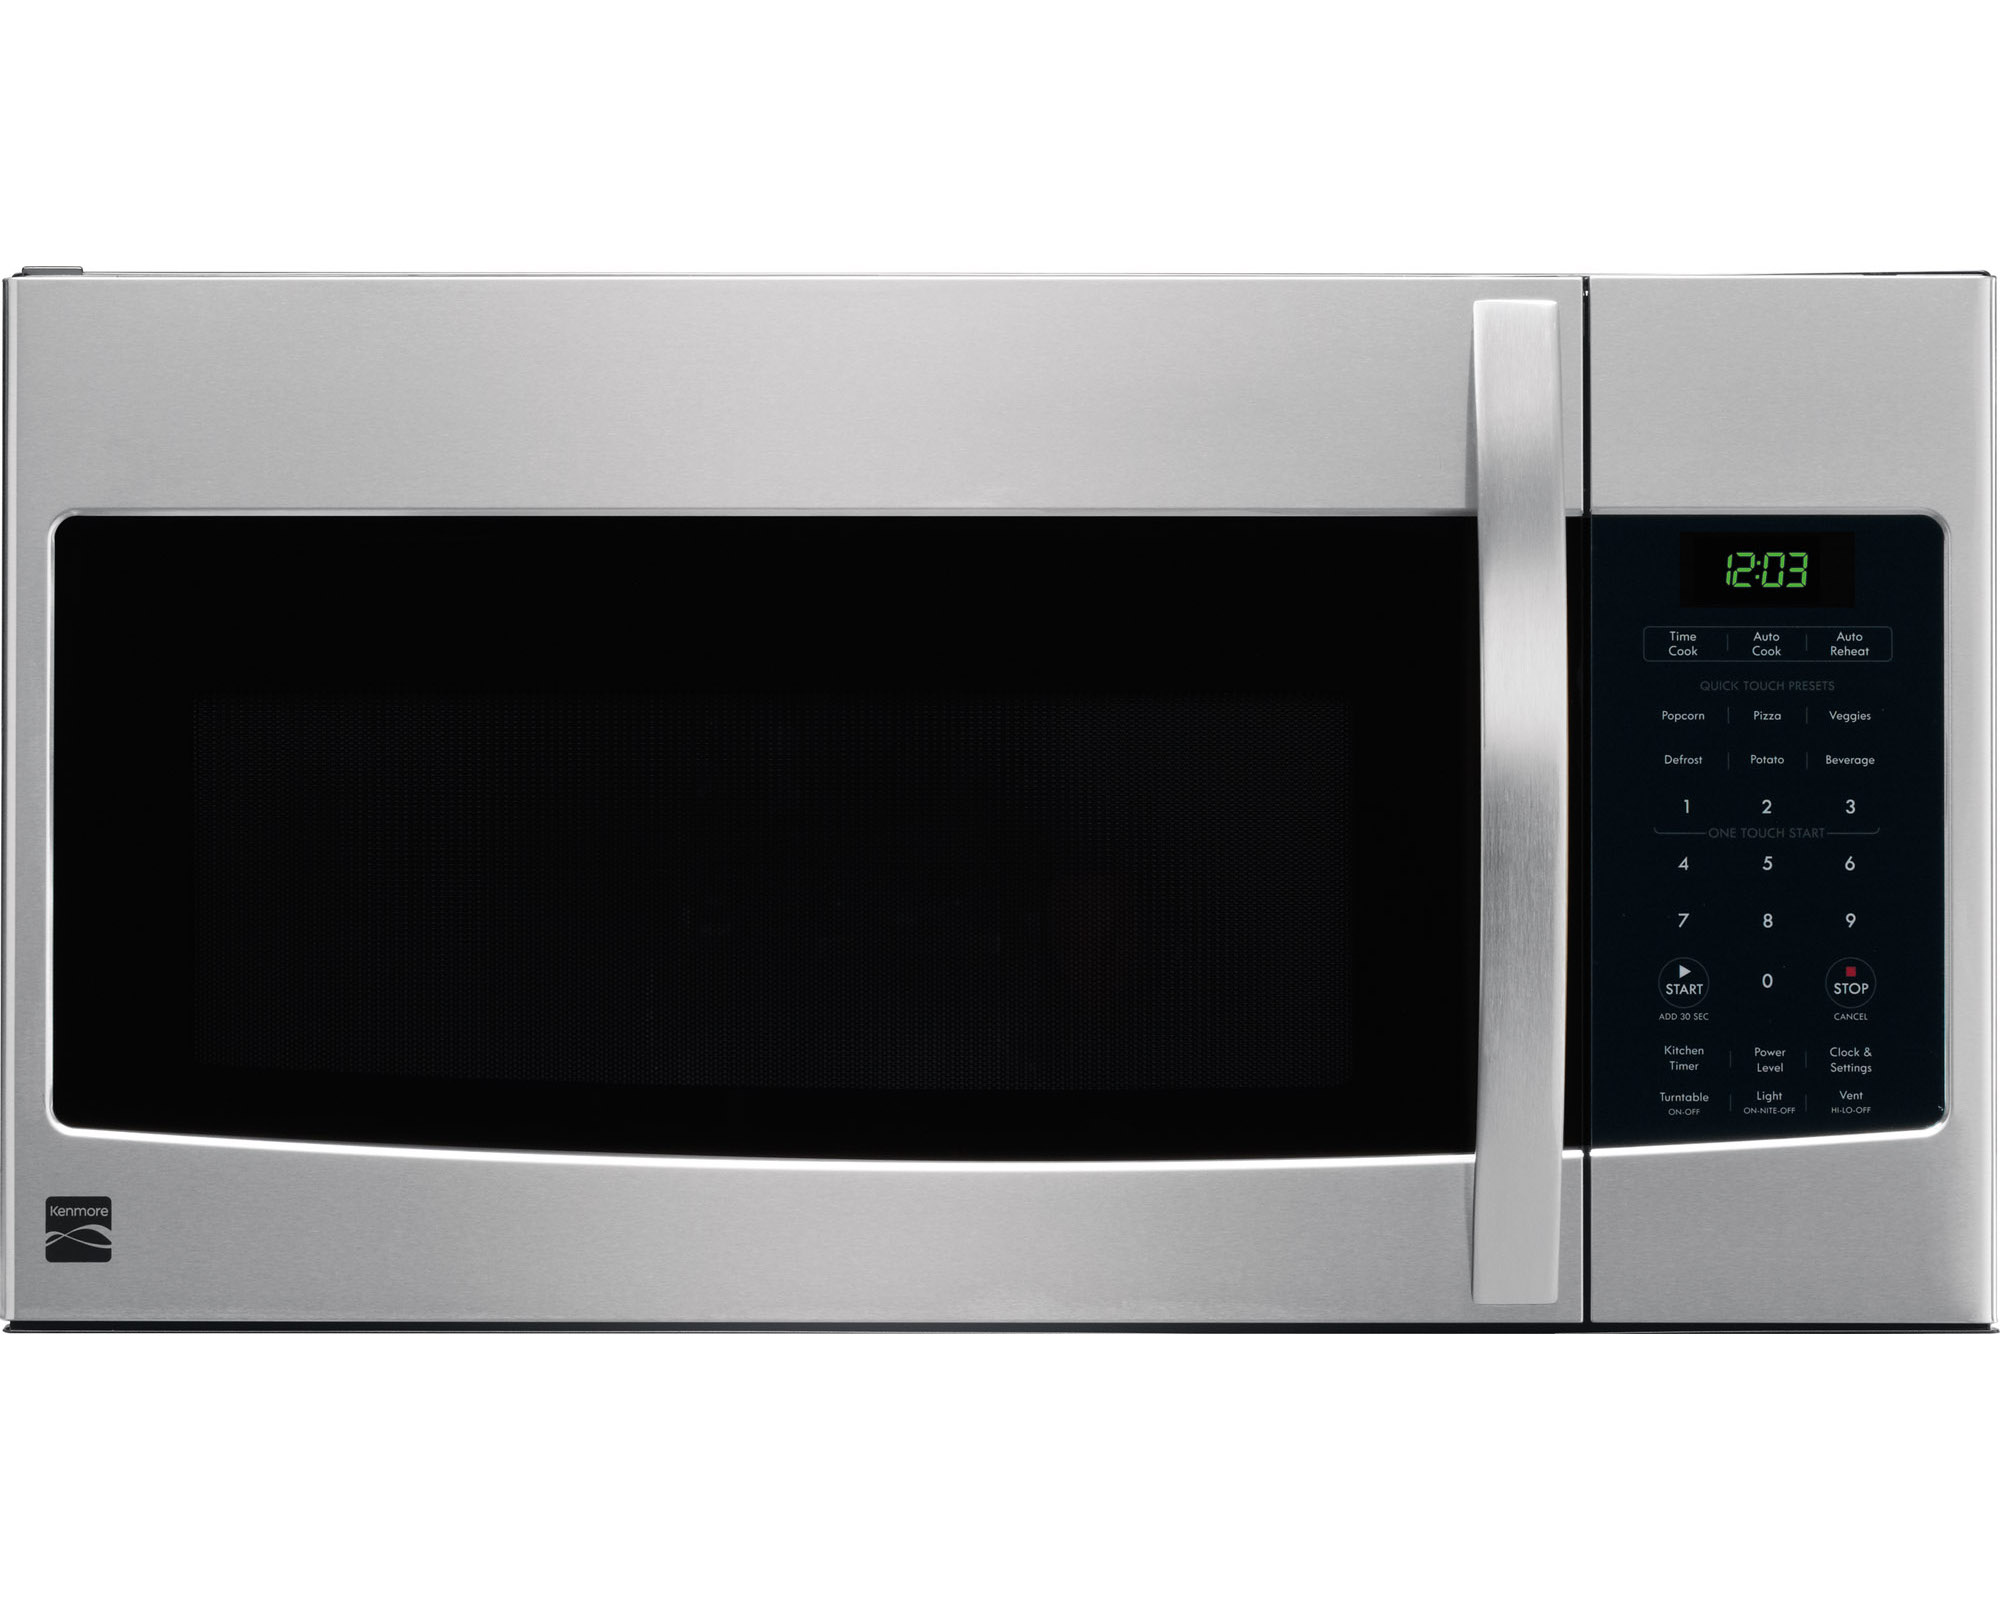 kenmore 80323 1 6 cu ft over the range microwave stainless steel